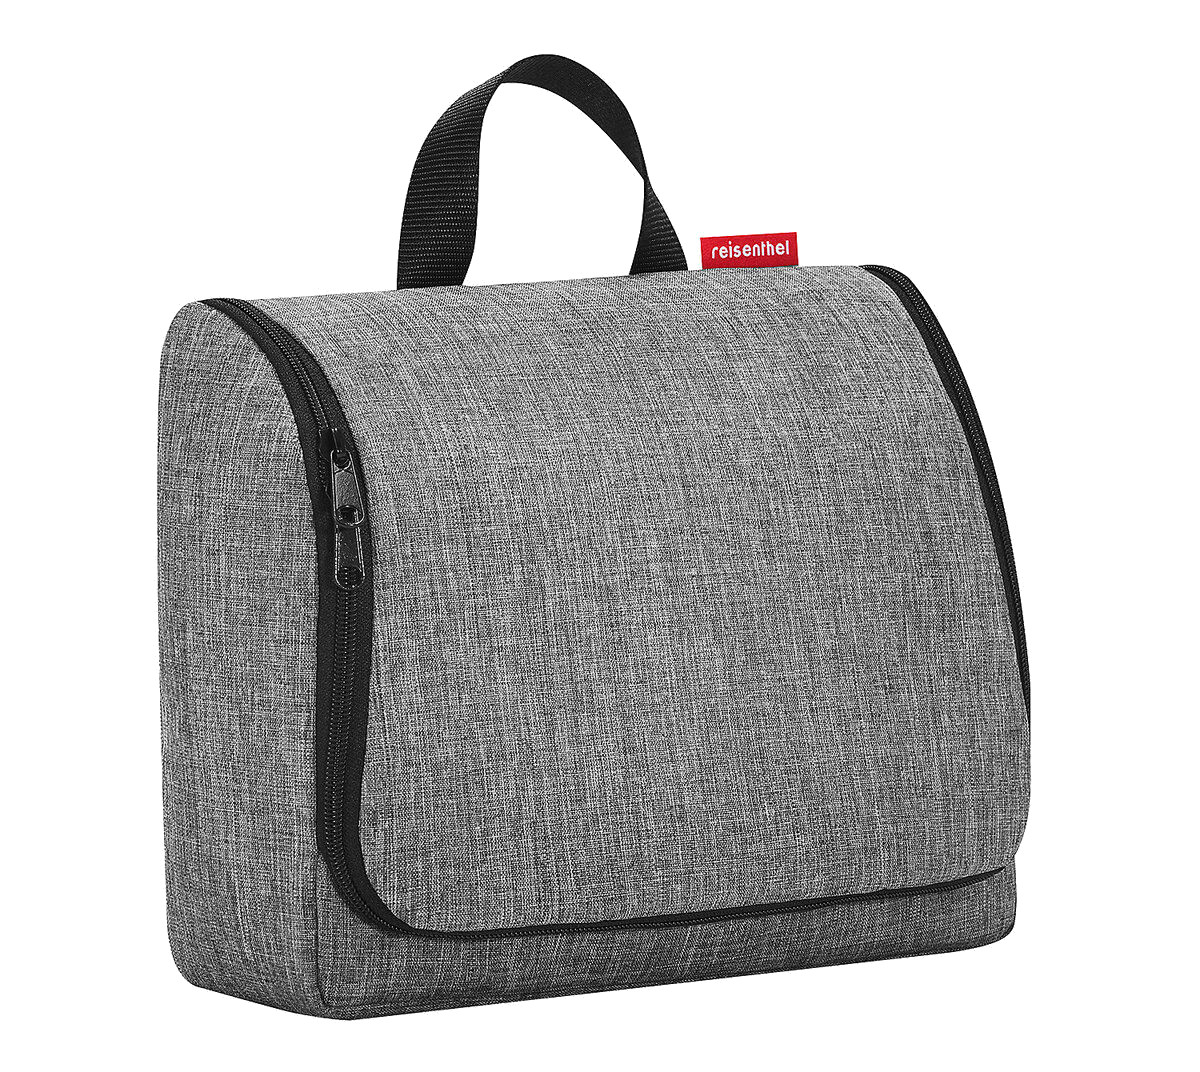 Reisenthel 'Toiletbag XL' twist silver